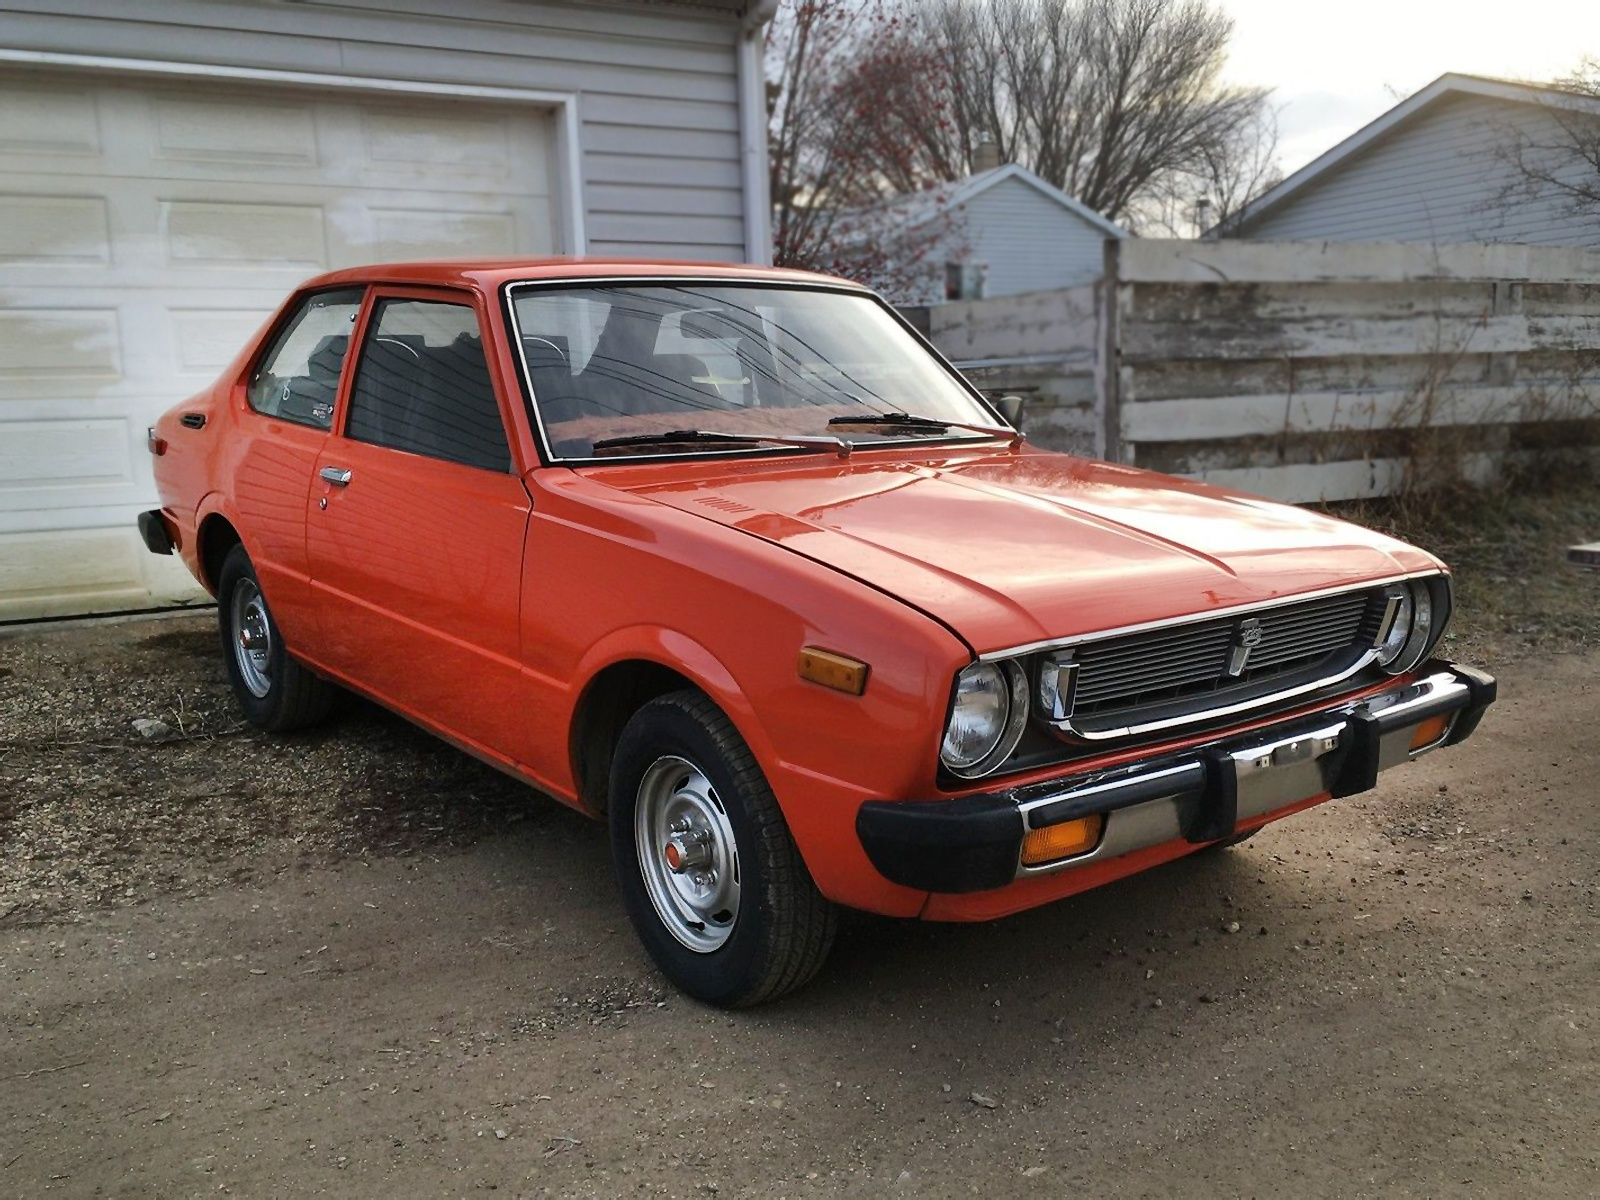 Orange You Glad 1976 Toyota Corolla Deluxe